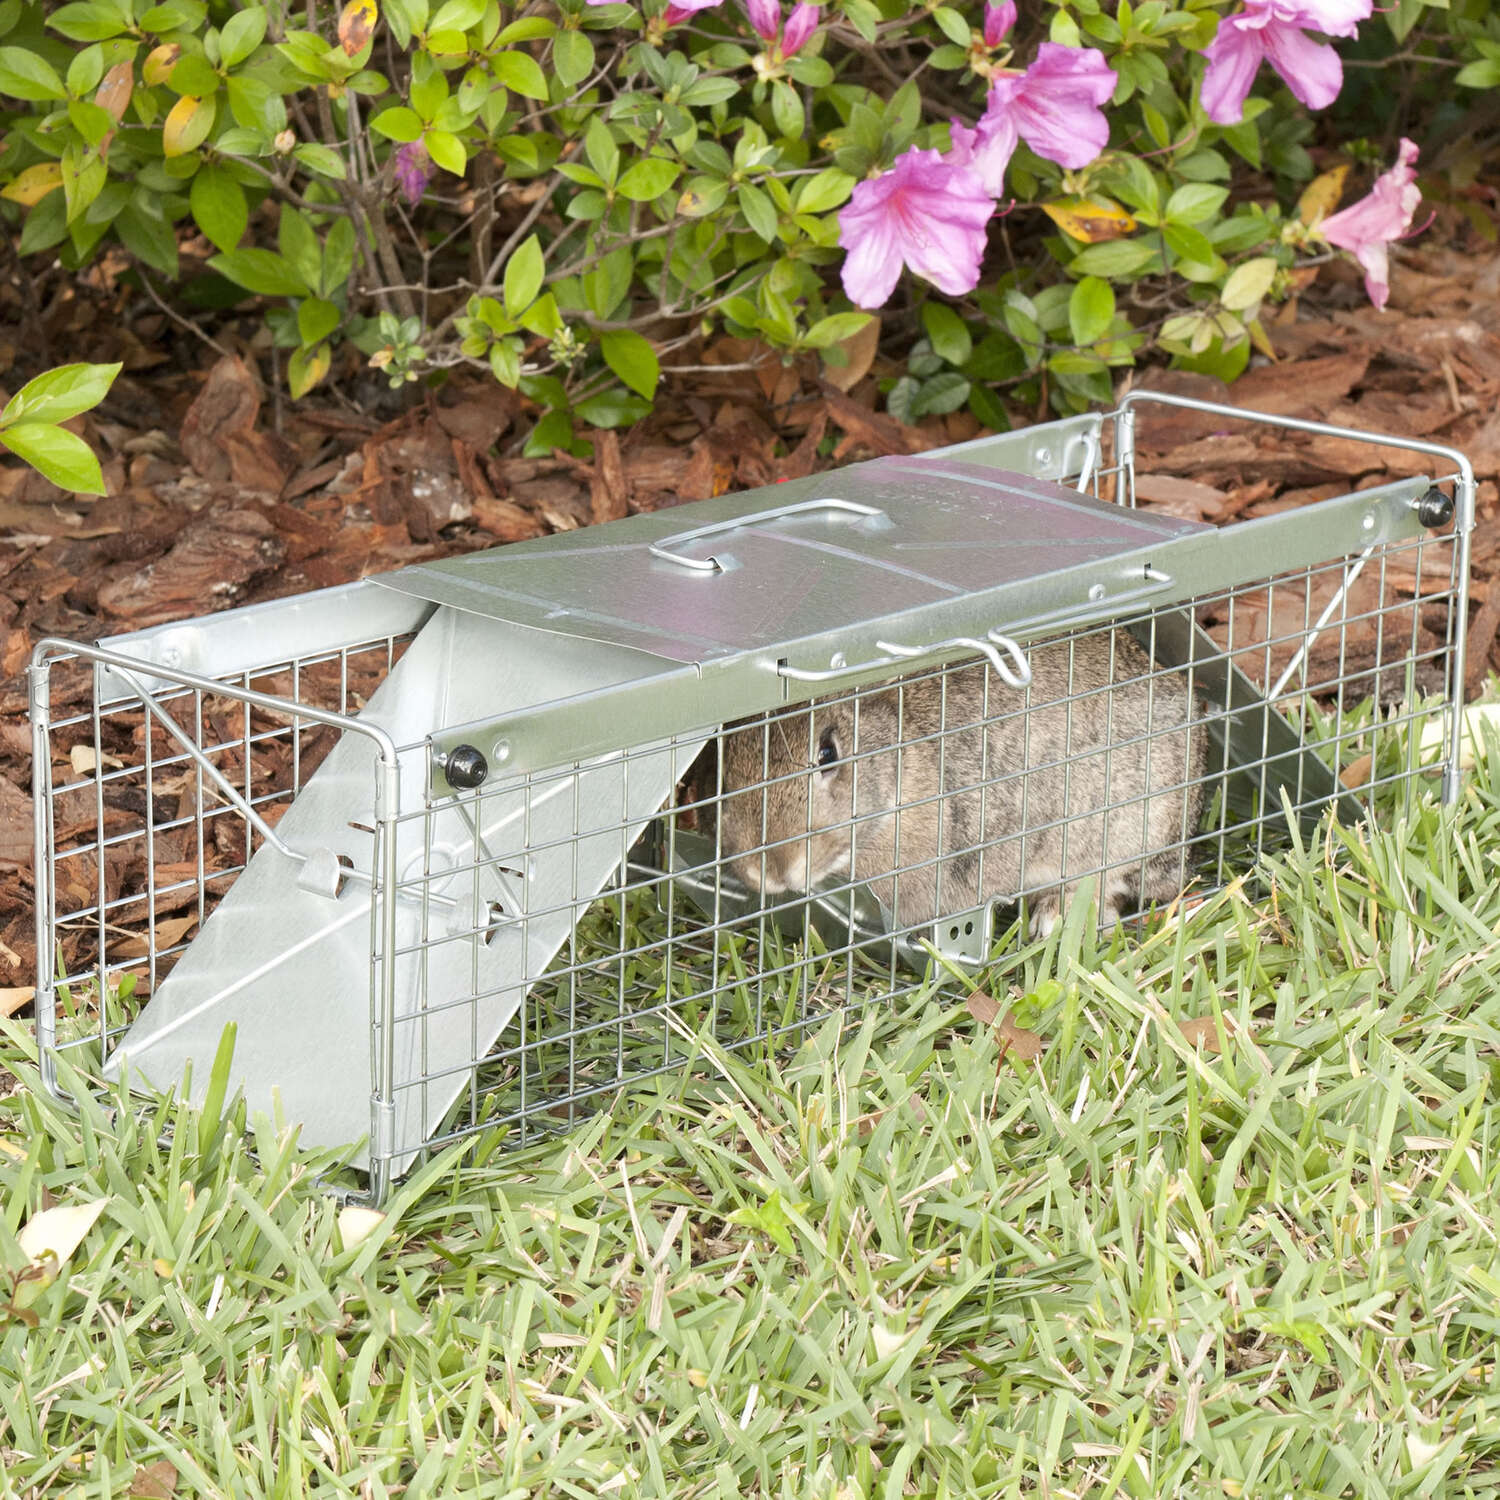 Havahart  Medium  Live Catch  Animal Trap  For Rabbits, Rabbits 1 each